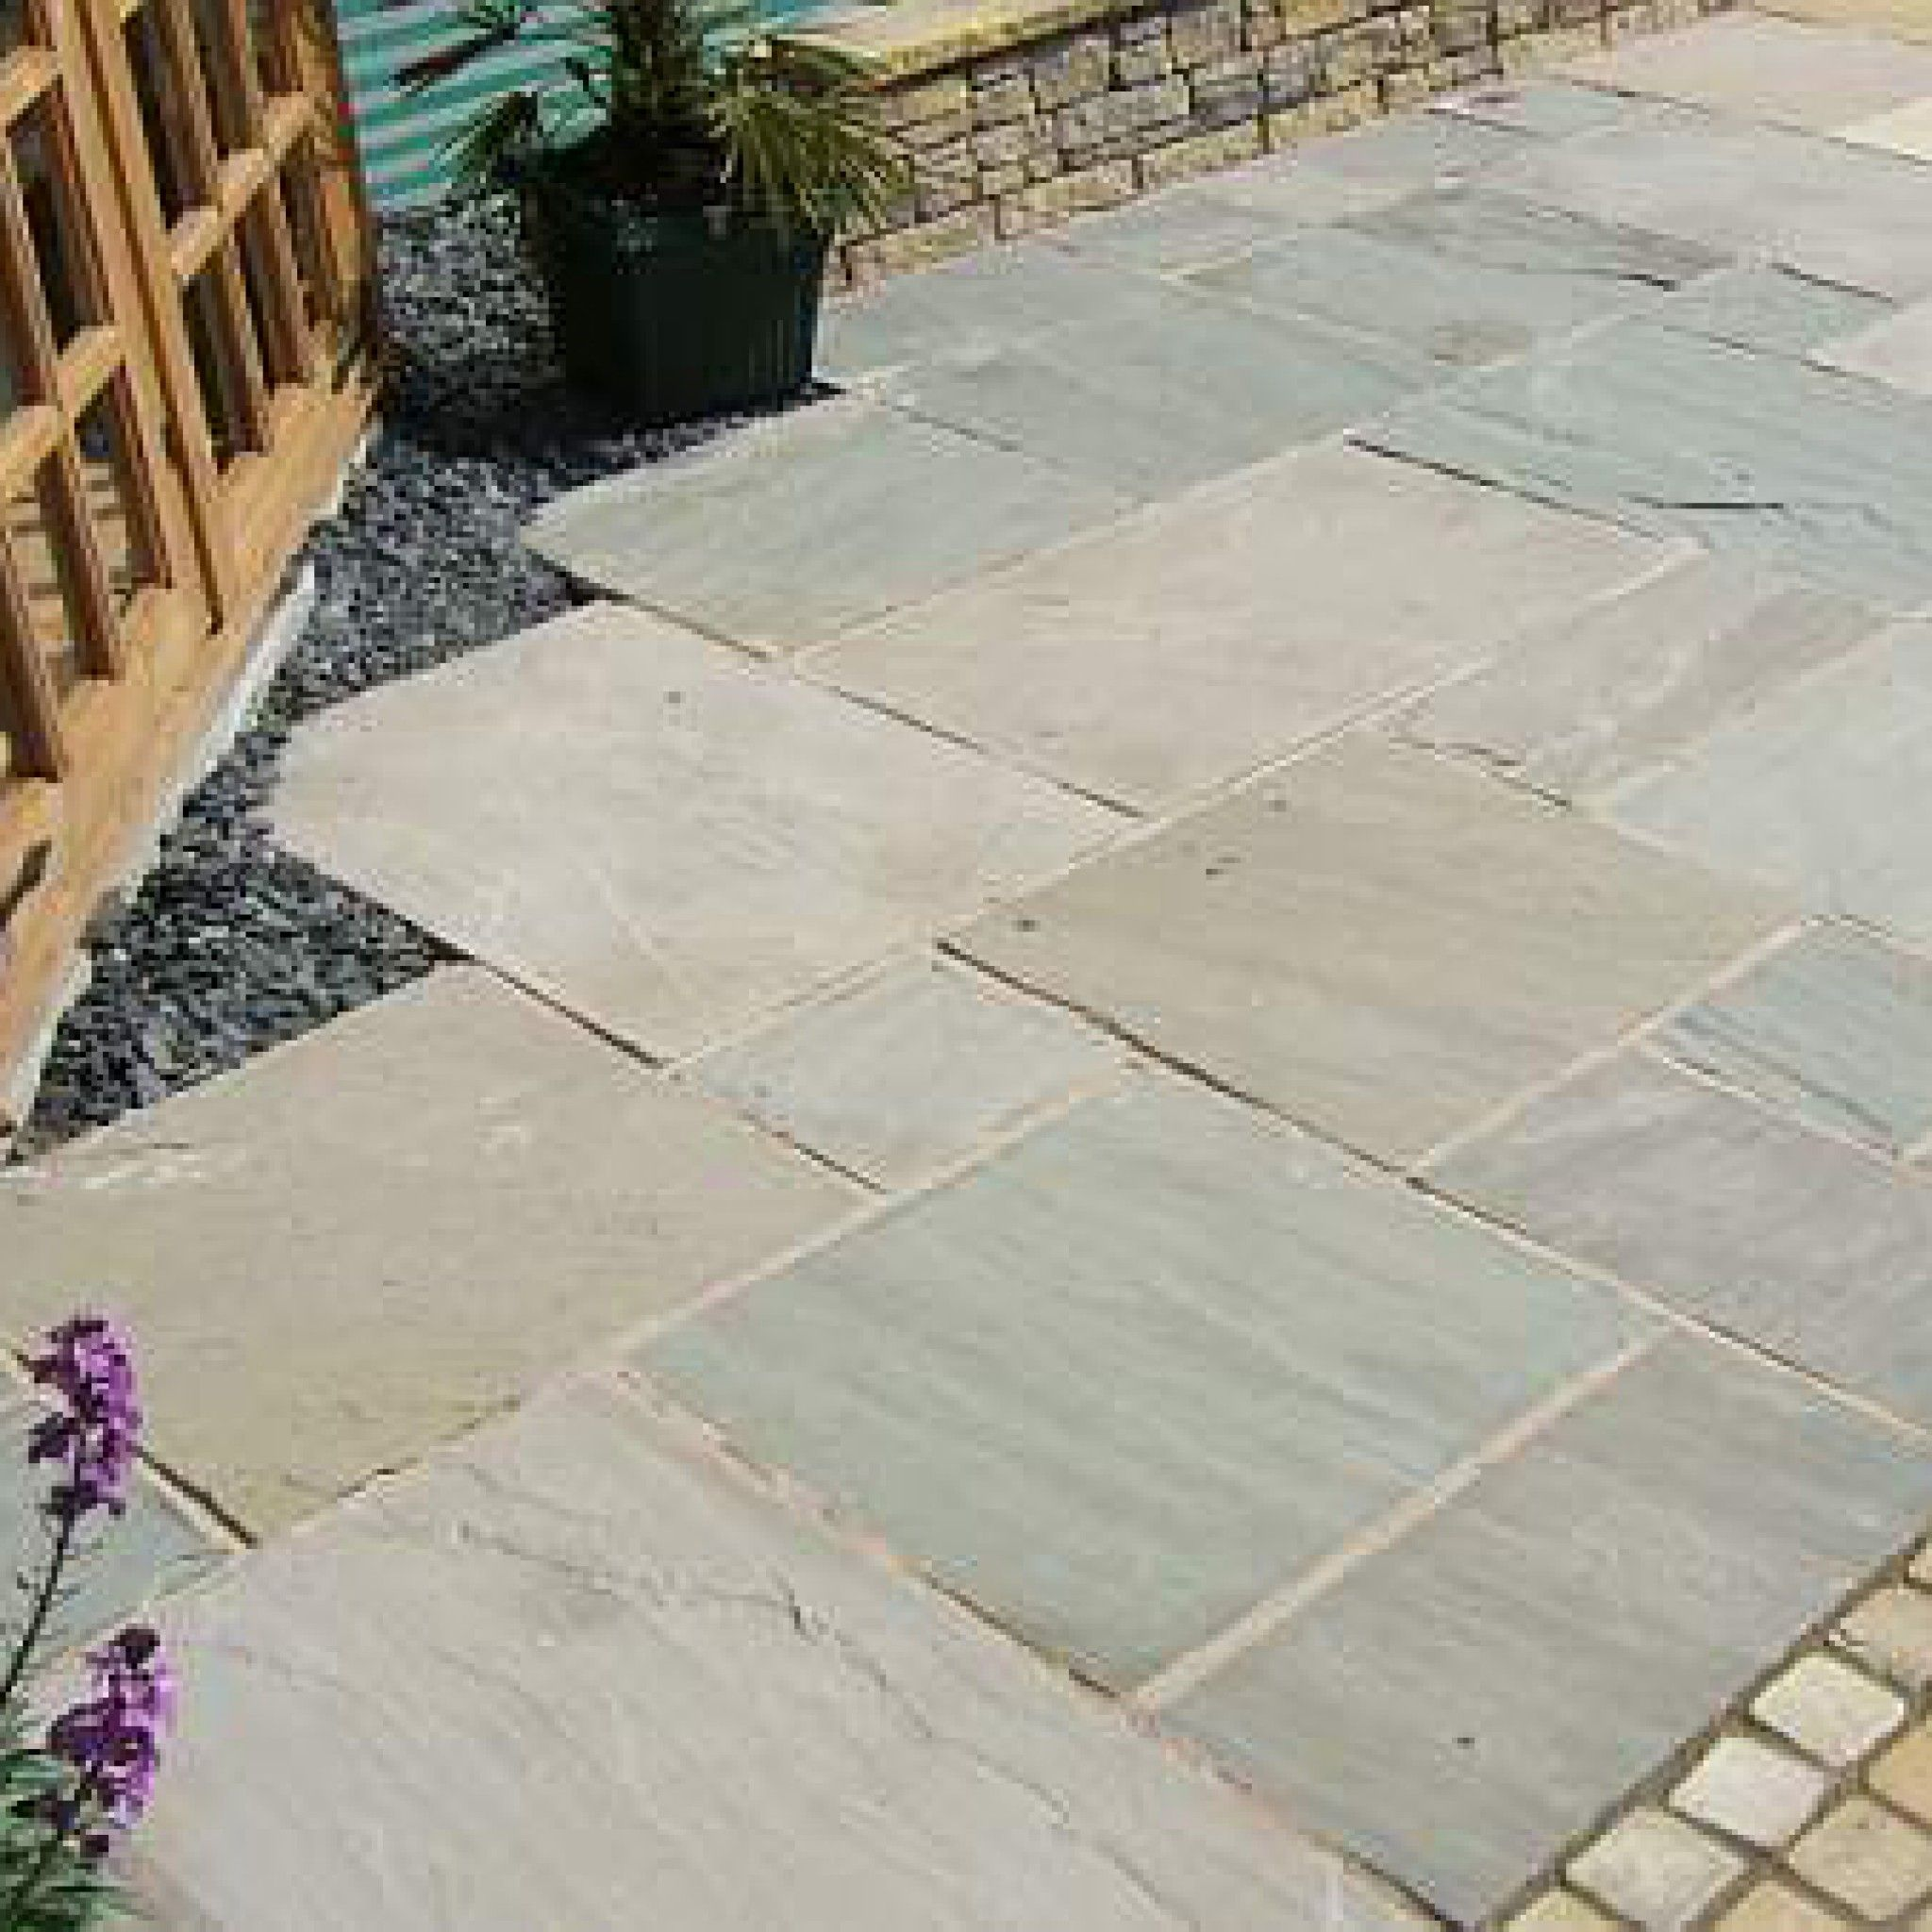 Bradstone Natural Sandstone Paving Silver Grey Patio Pack 15 30 M2 Per Pack Natural Stone Paving Garden Paving Patio Garden Rock Garden Landscaping